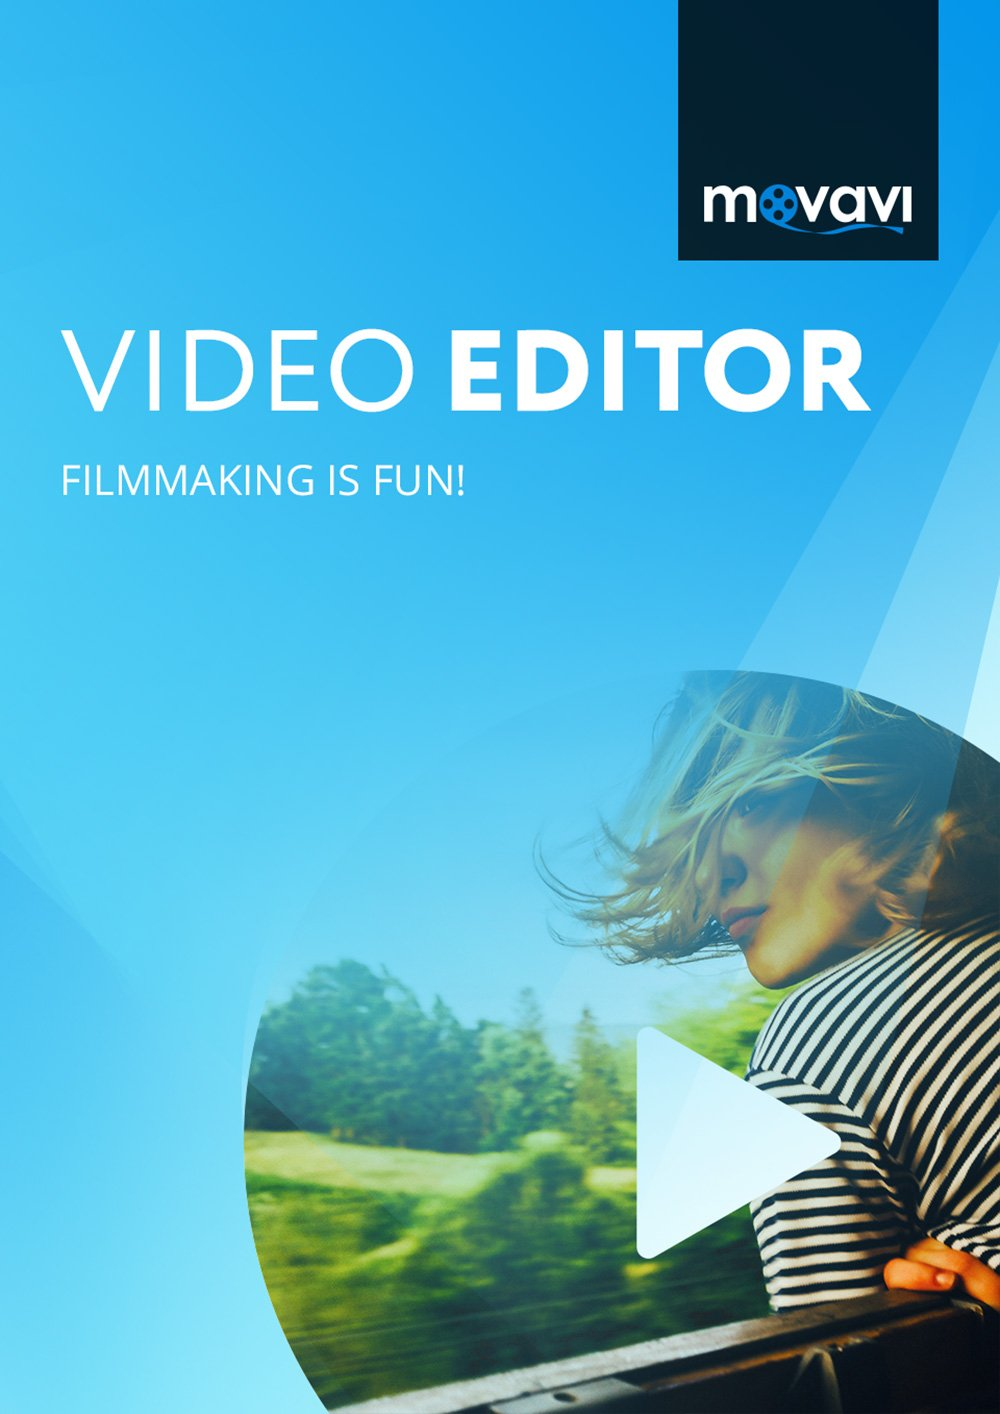 Movavi Video Editor 15 [PC Download] by Movavi Software Inc